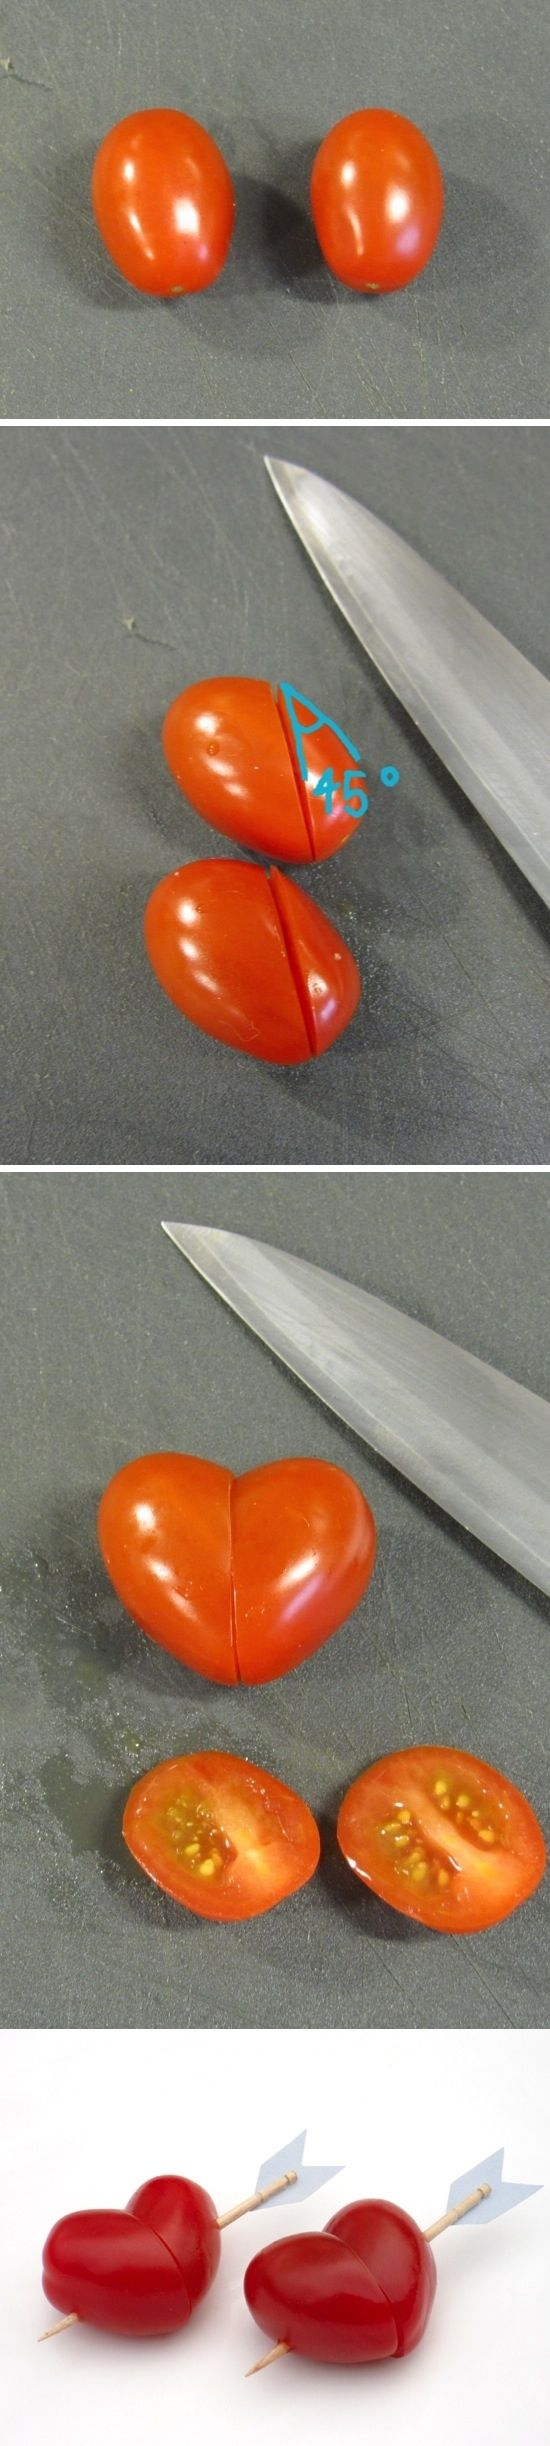 Heart-Shaped Grape Tomato Hearts